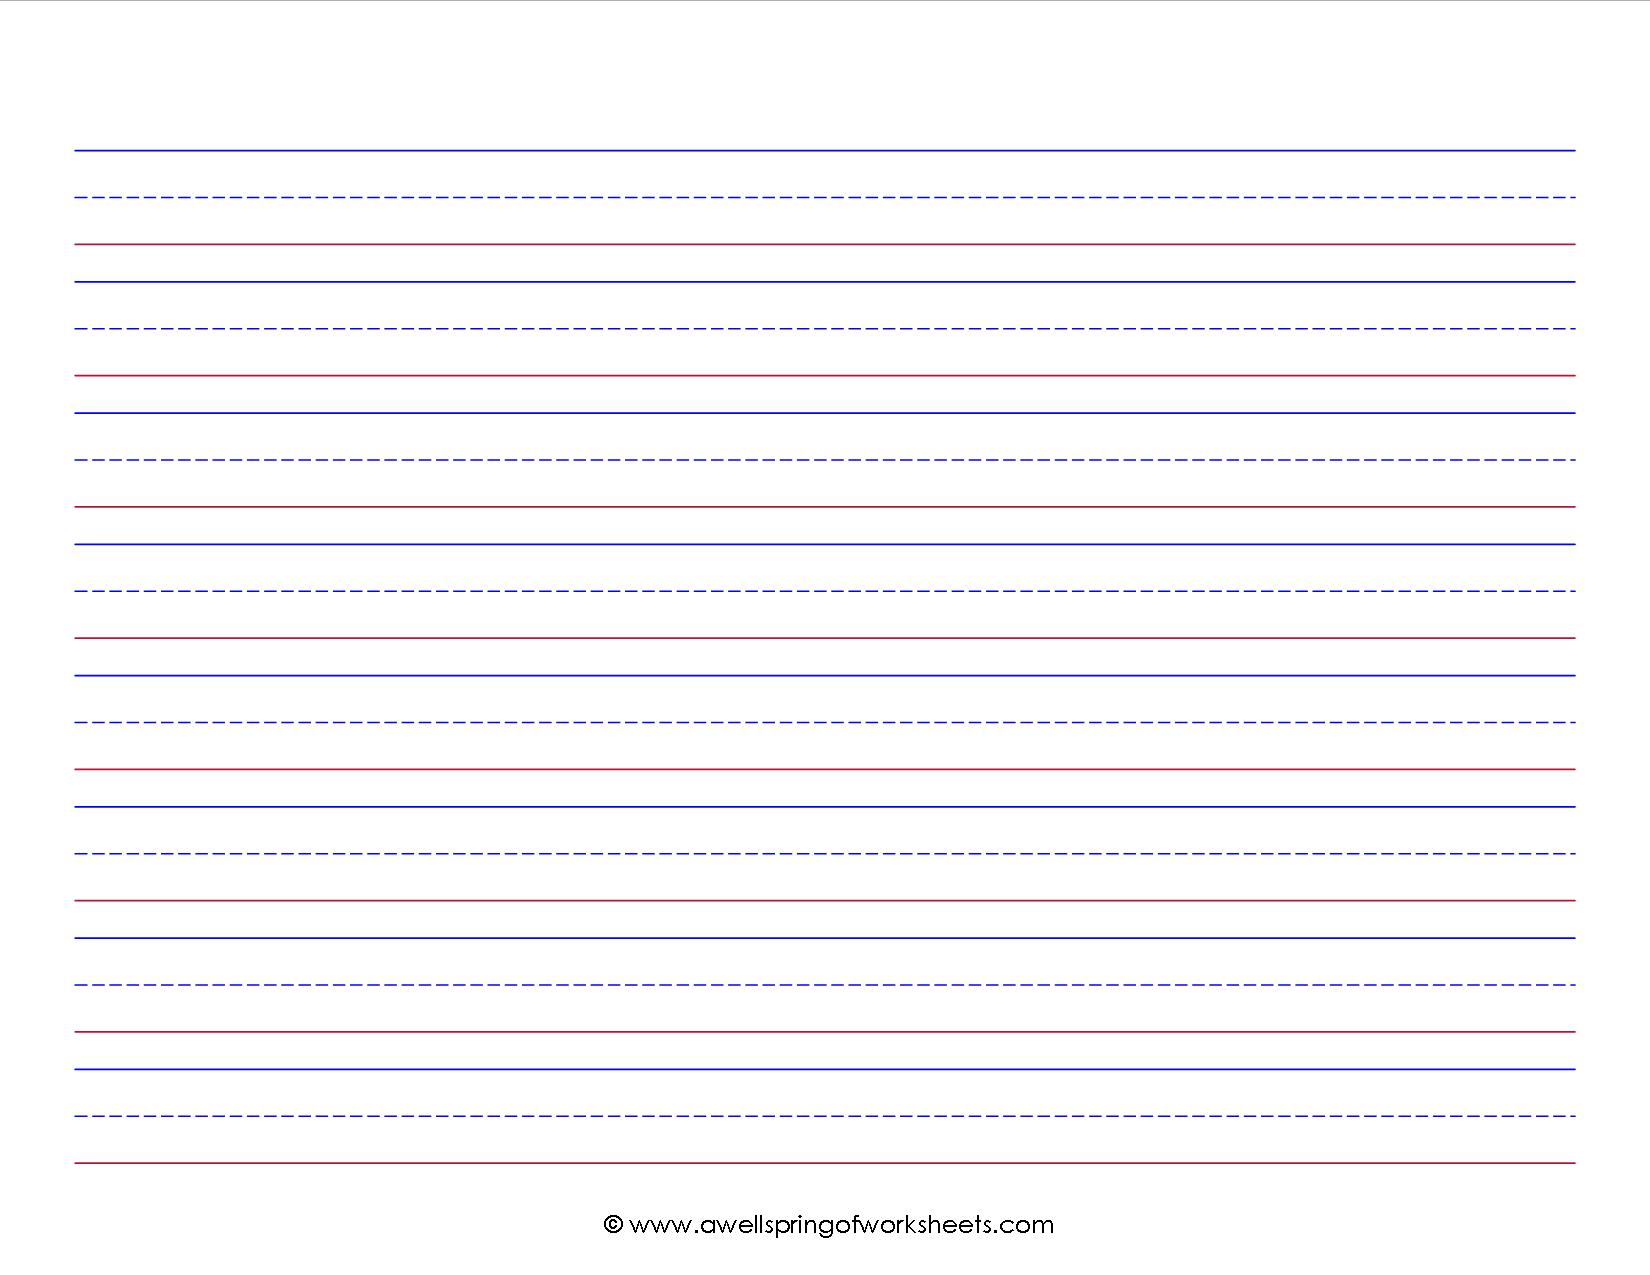 Kindergarten Lined Paper Template primary paper lined paper and – Lined Paper Template Kids